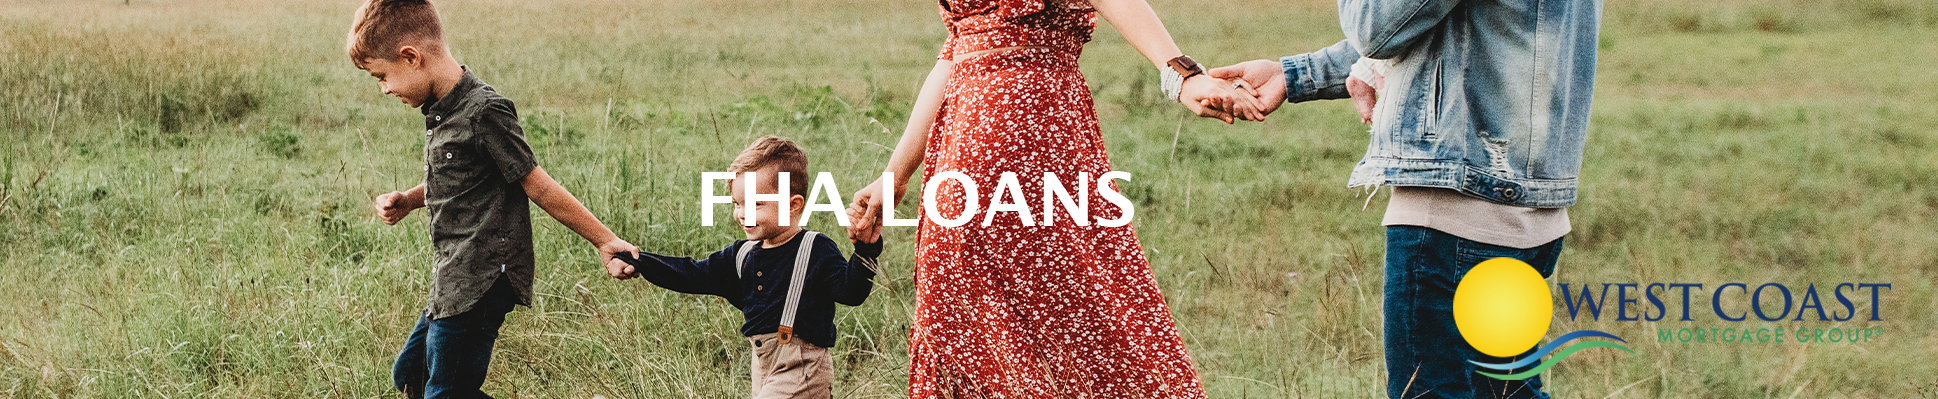 Federal Housing Administration (FHA) Loan | West Coast Mortgage Group